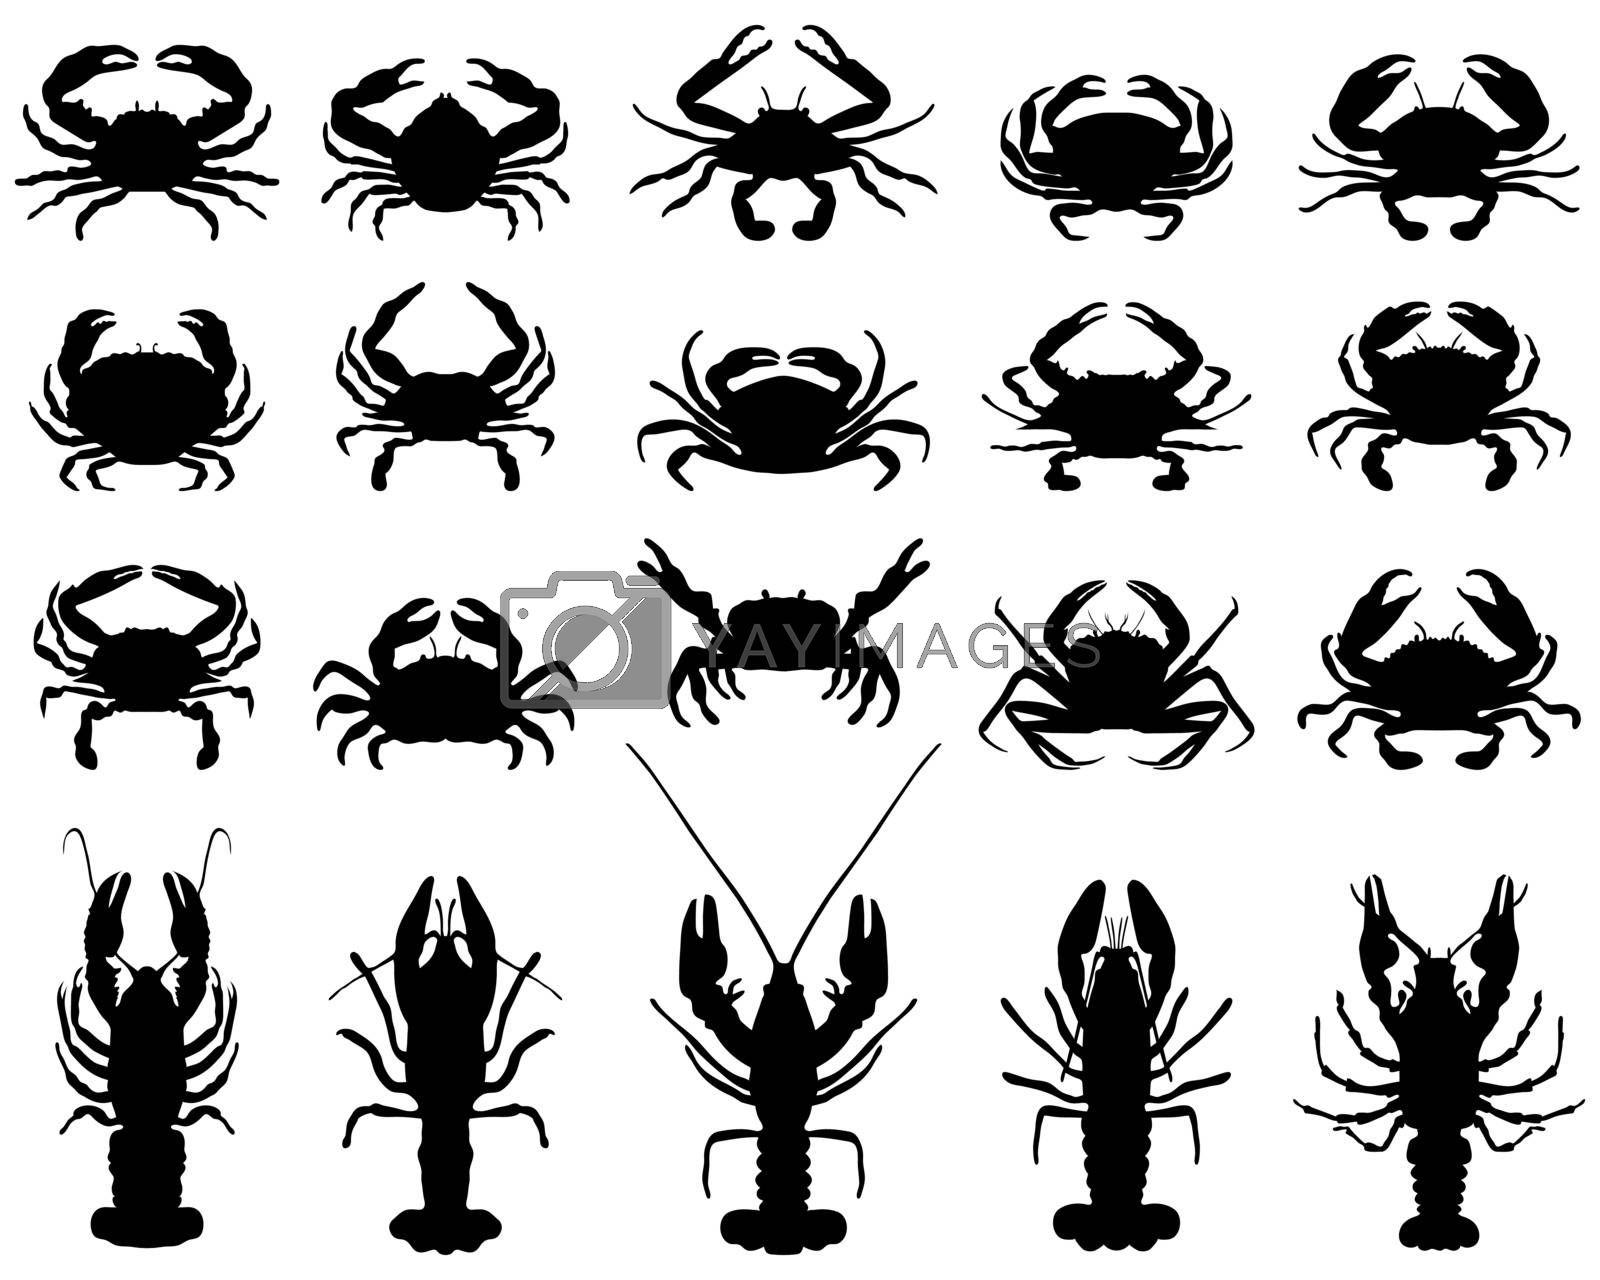 Black silhouettes of crawfish and crab on a white background